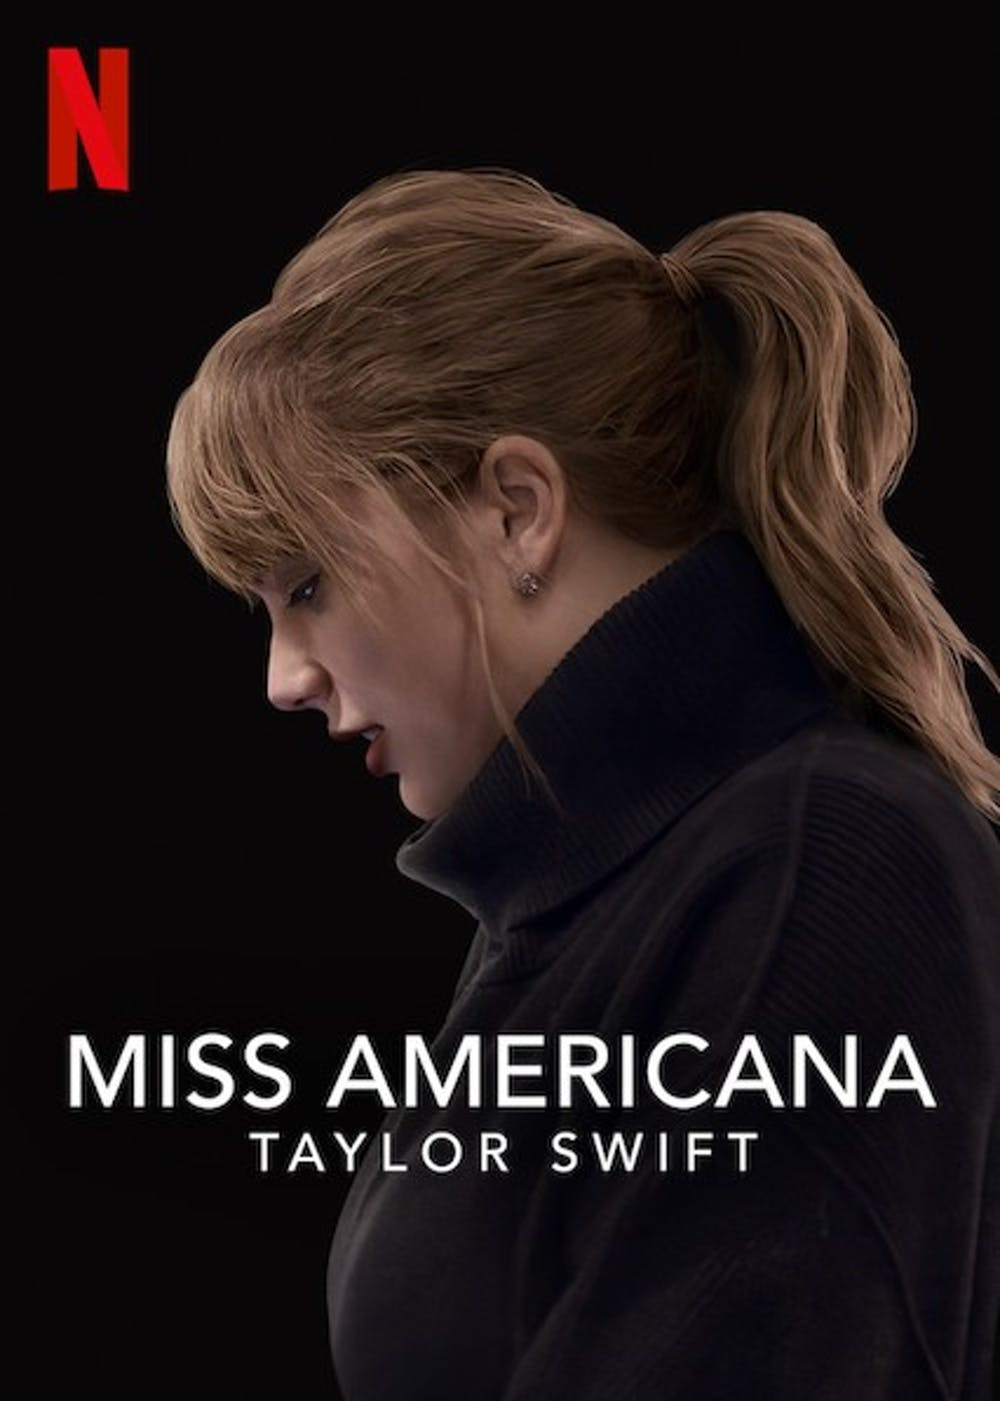 """Review: """"Miss Americana,"""" Taylor Swifts latest Netflix documentary, gets personal and political"""